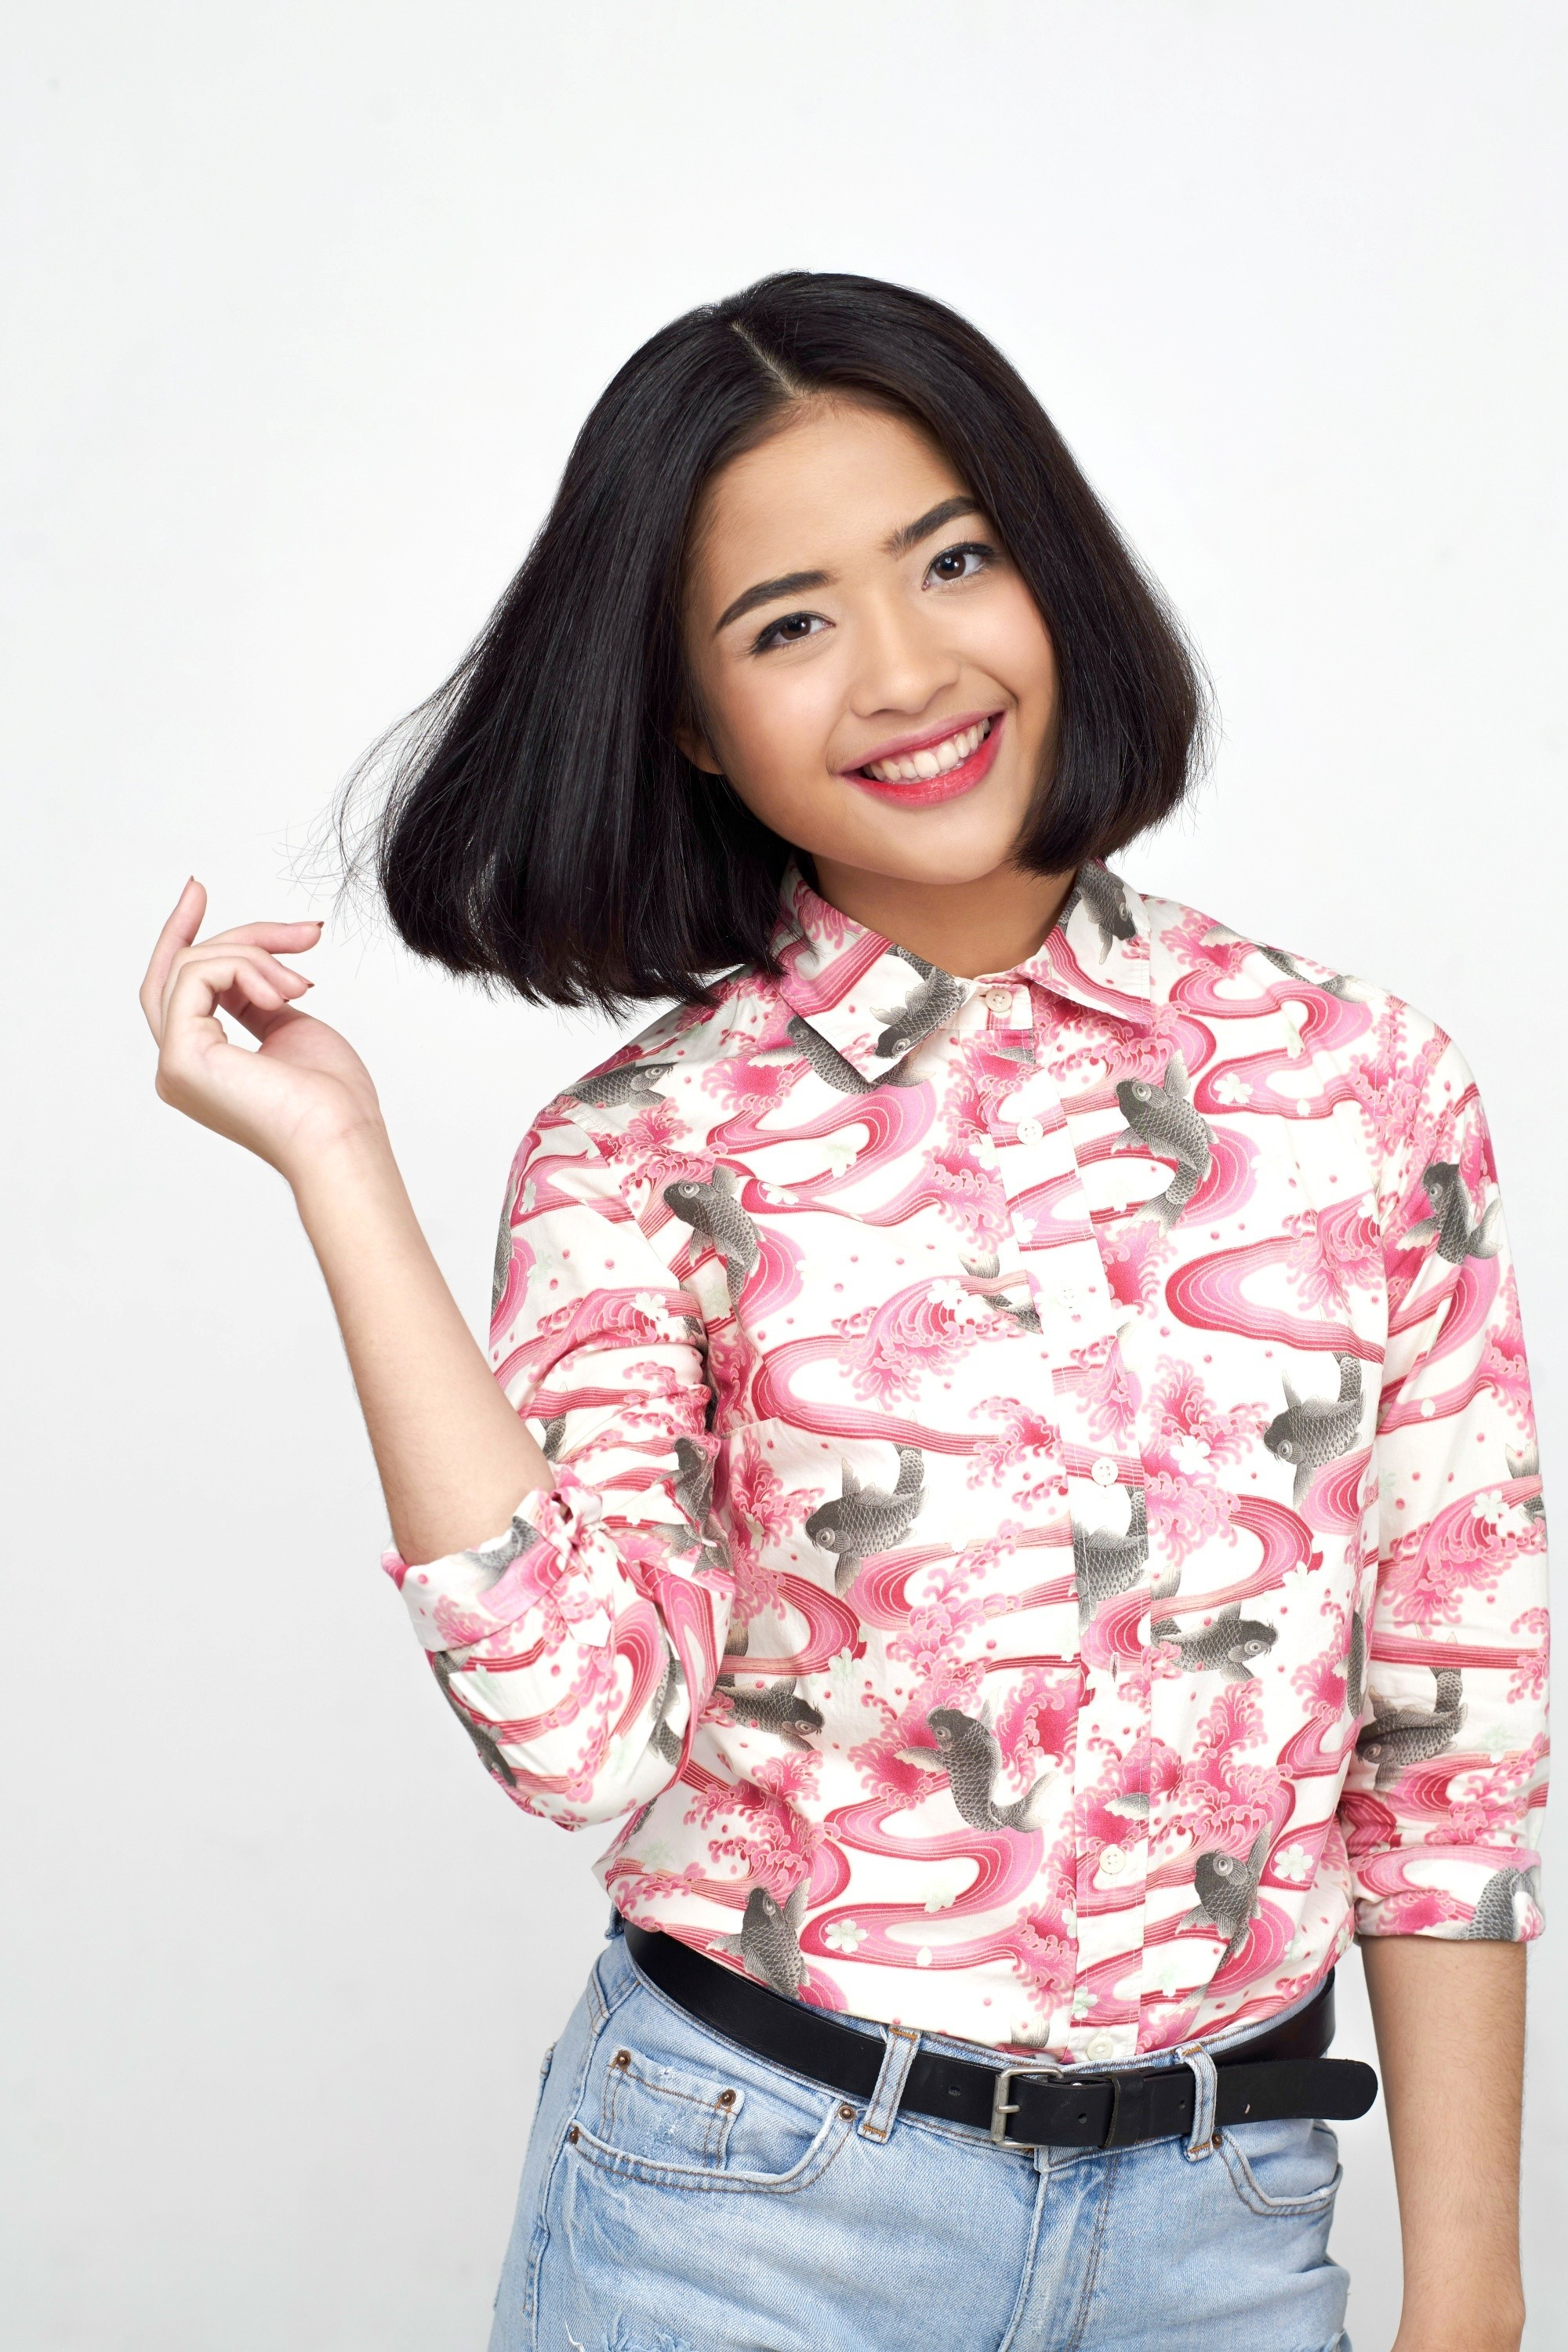 Asian woman with a center-parted bob hairstyle